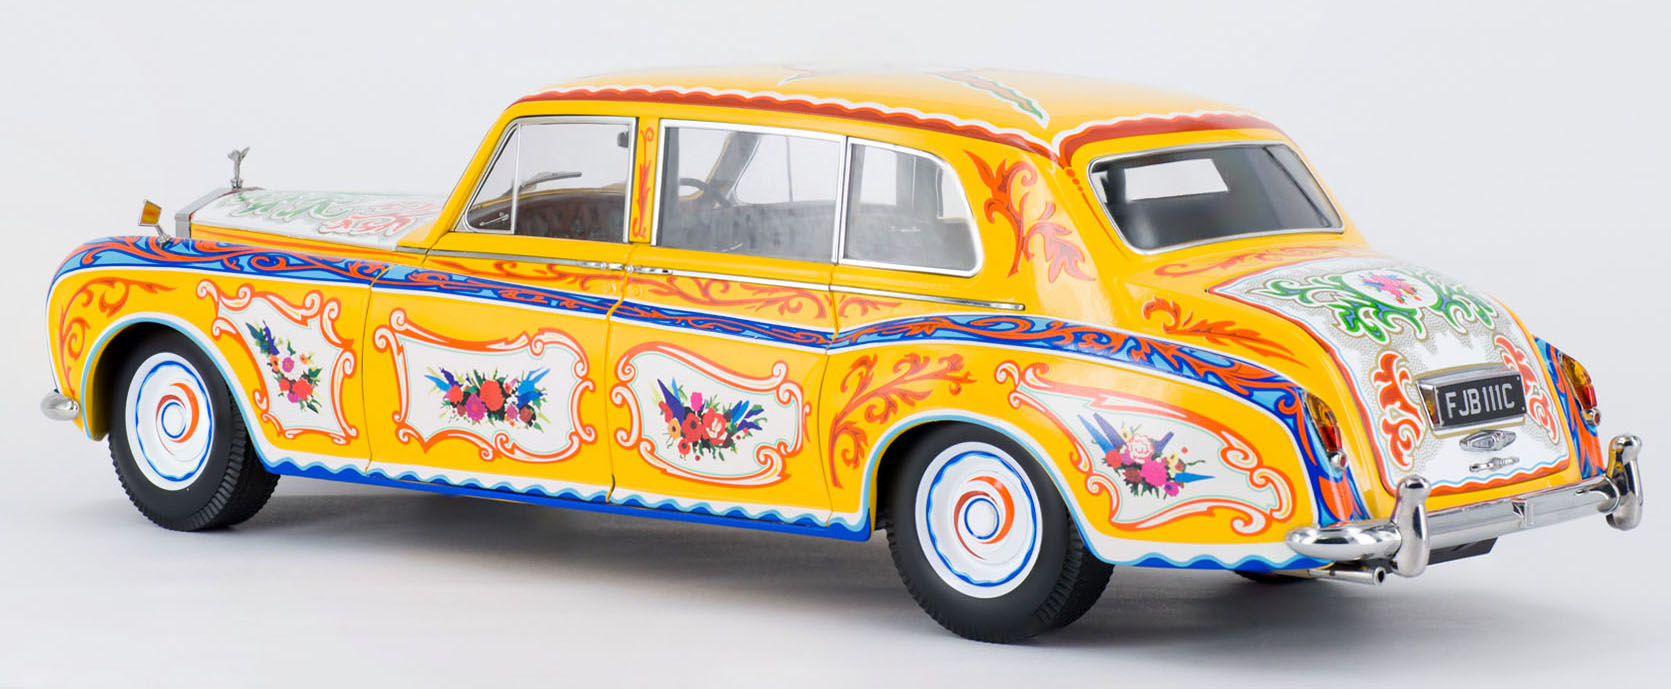 paragon releases 1:18 john lennon's psychedelic rolls-royce – xdiecast